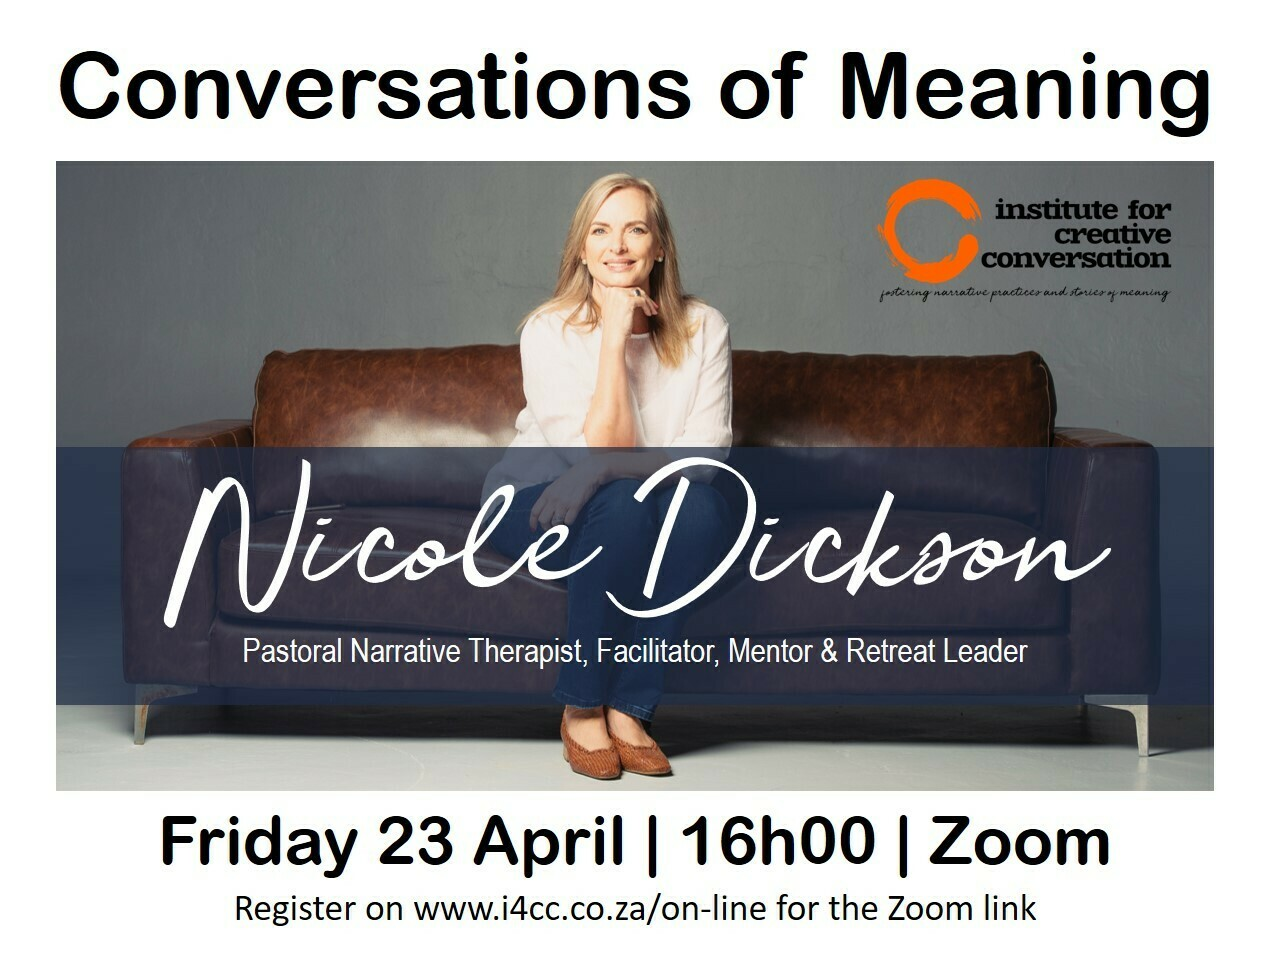 Conversation of Meaning with Nicole Dickson